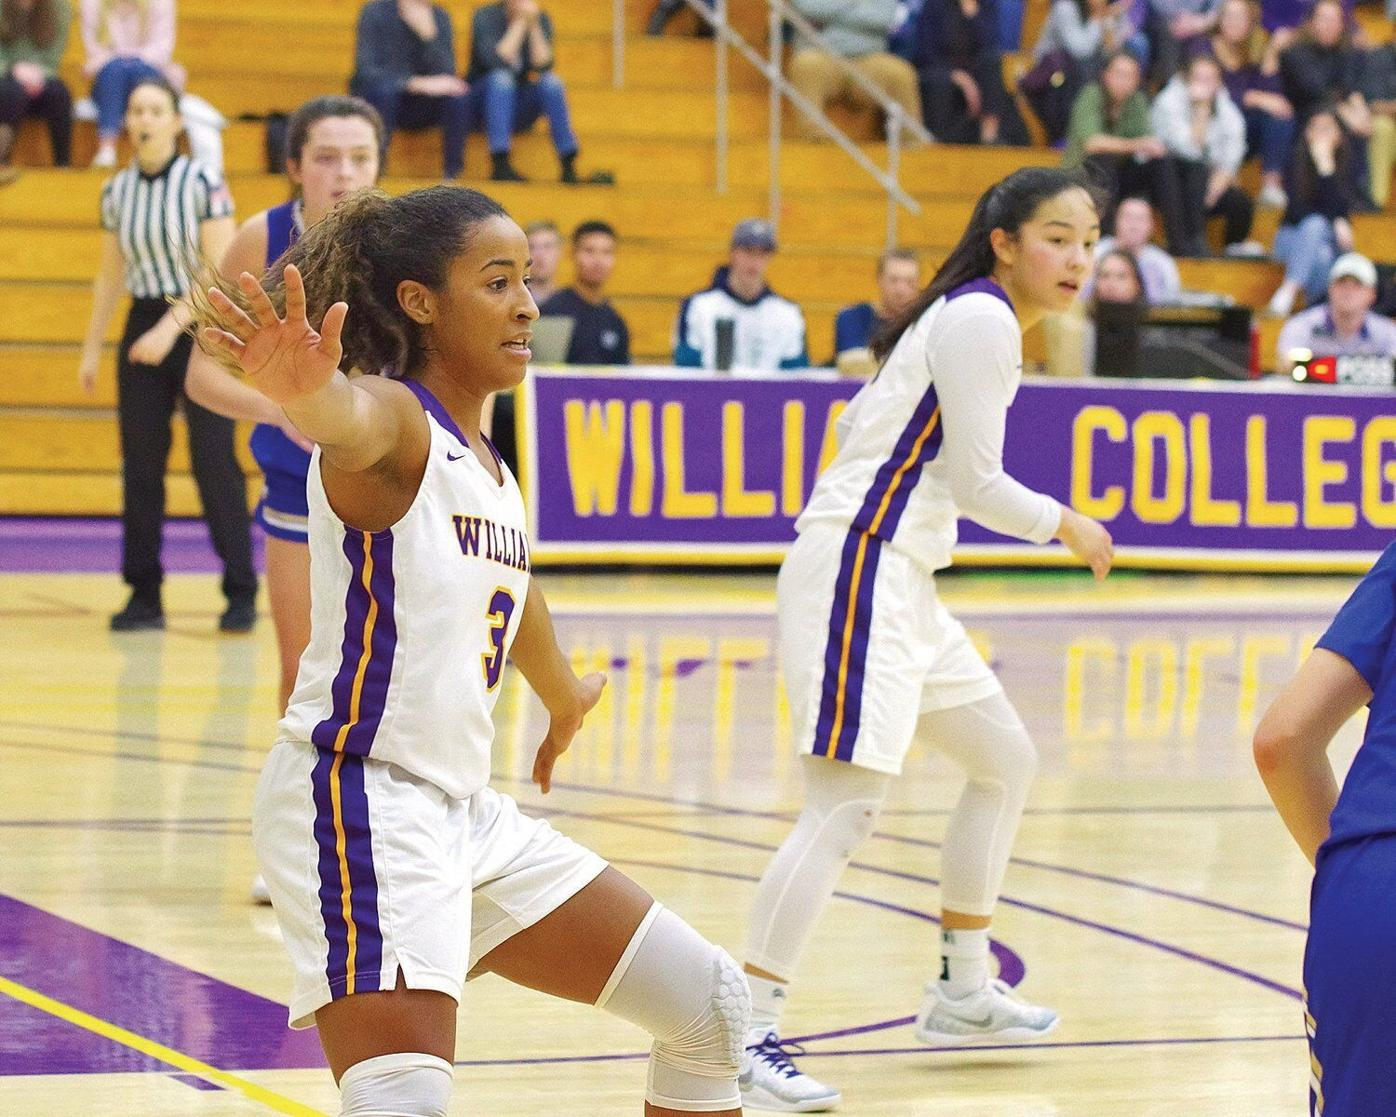 With winter seasons still in jeopardy, Williams College athletes face tough questions on whether to return to campus or not